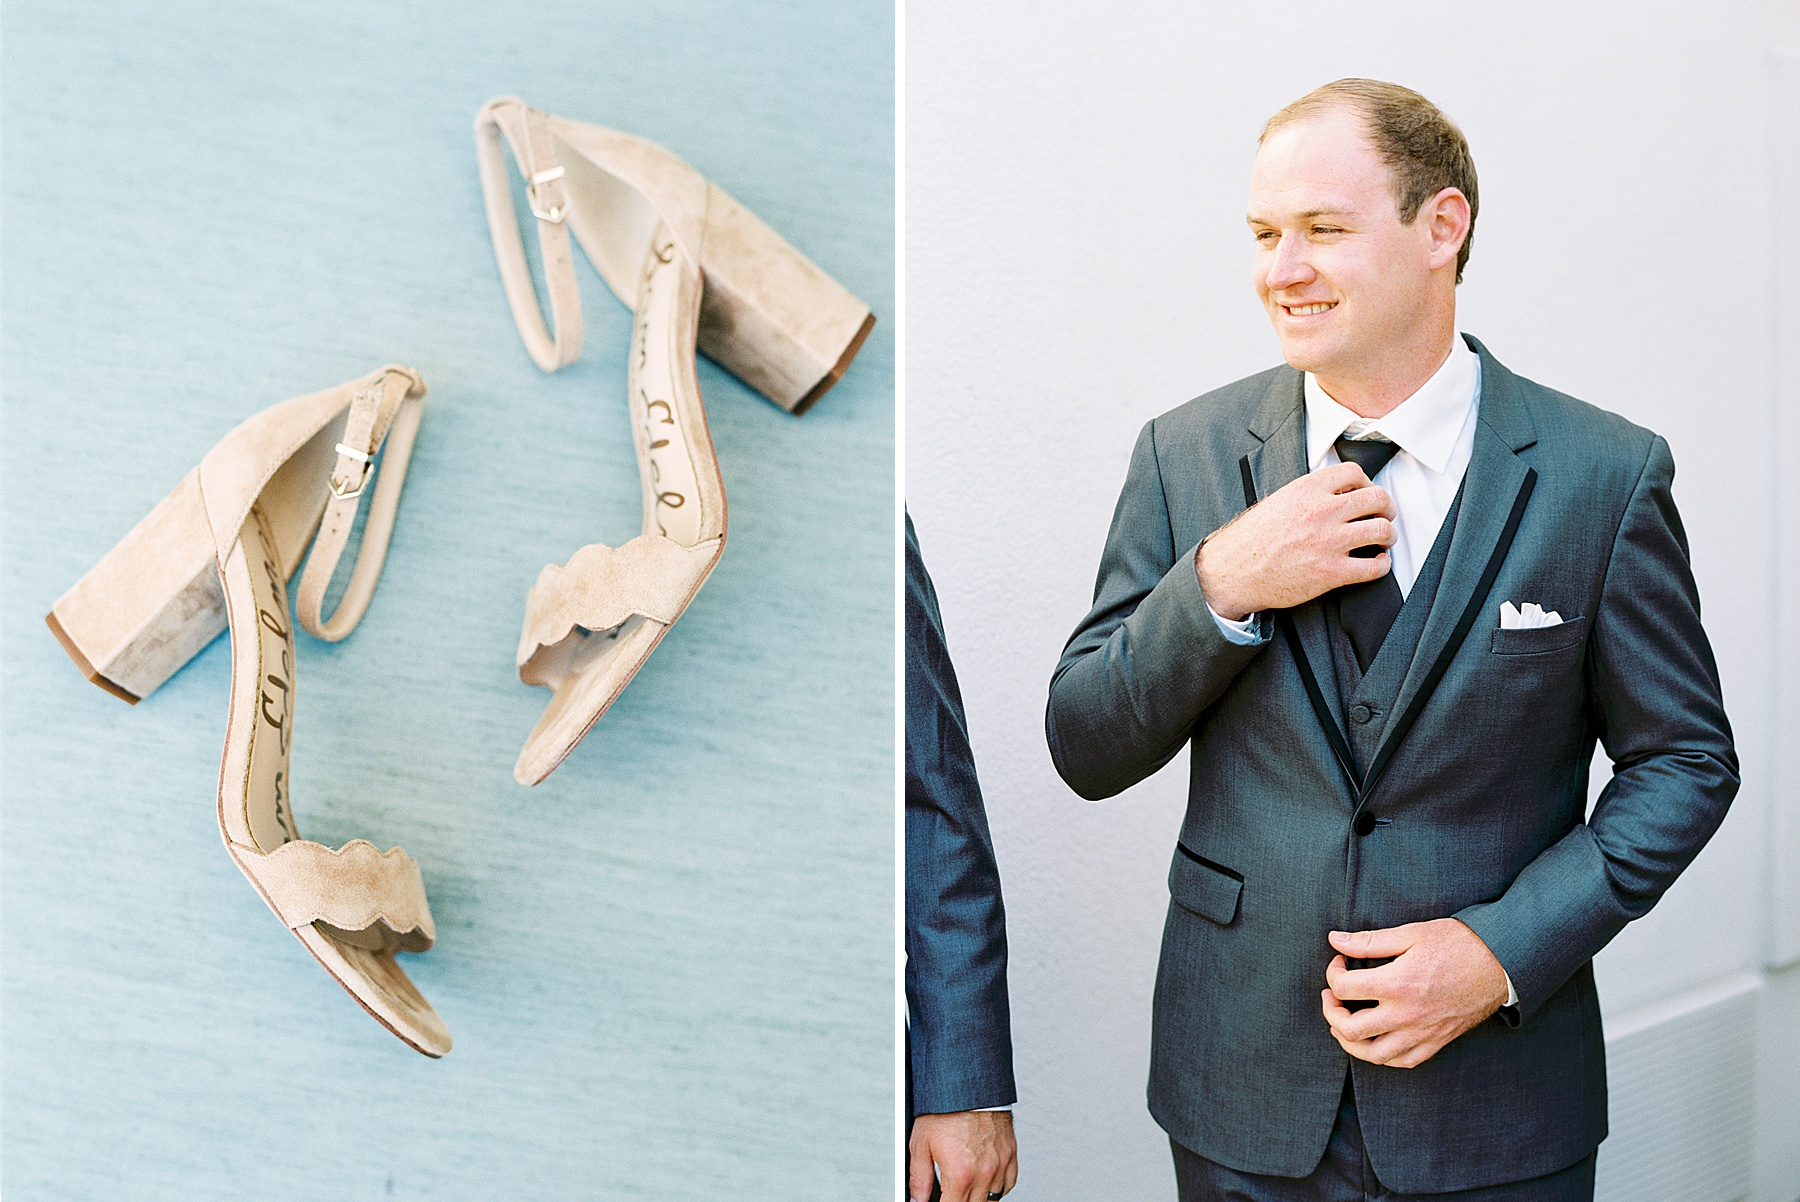 Wente Wedding with A Tropical Color Palette - Ashley & Mike - Featured on Inspired by This - Ashley Baumgartner_0021.jpg